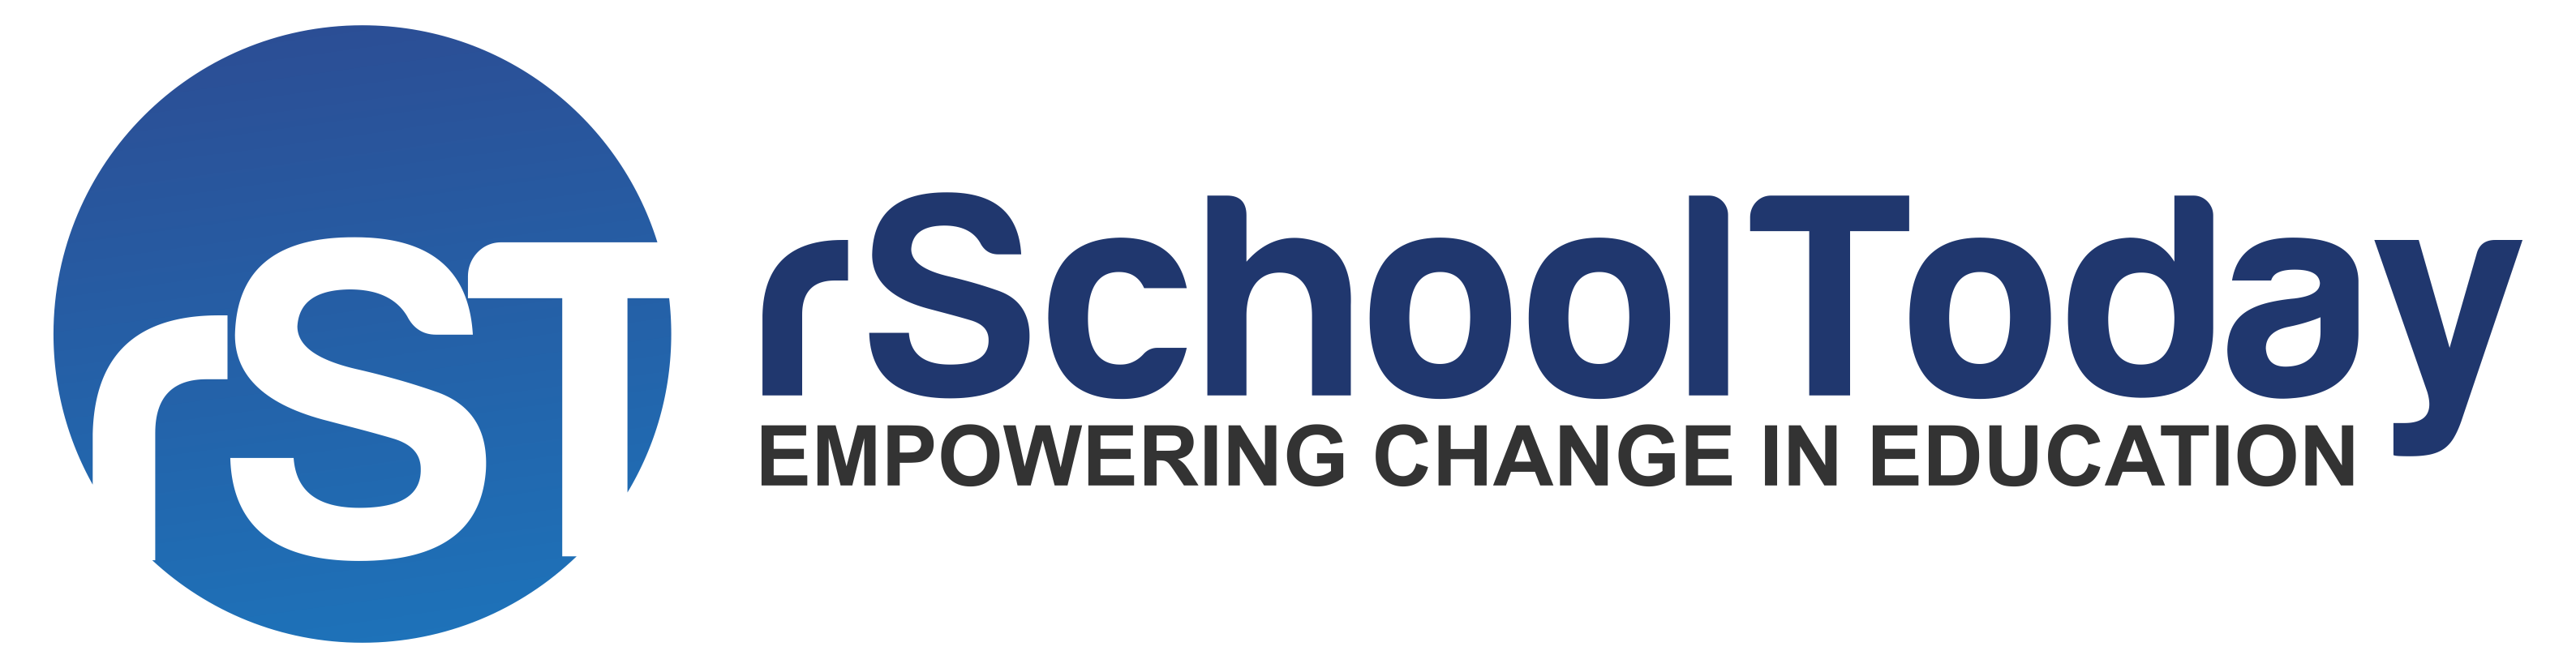 rschoolToday Website Applications for Education